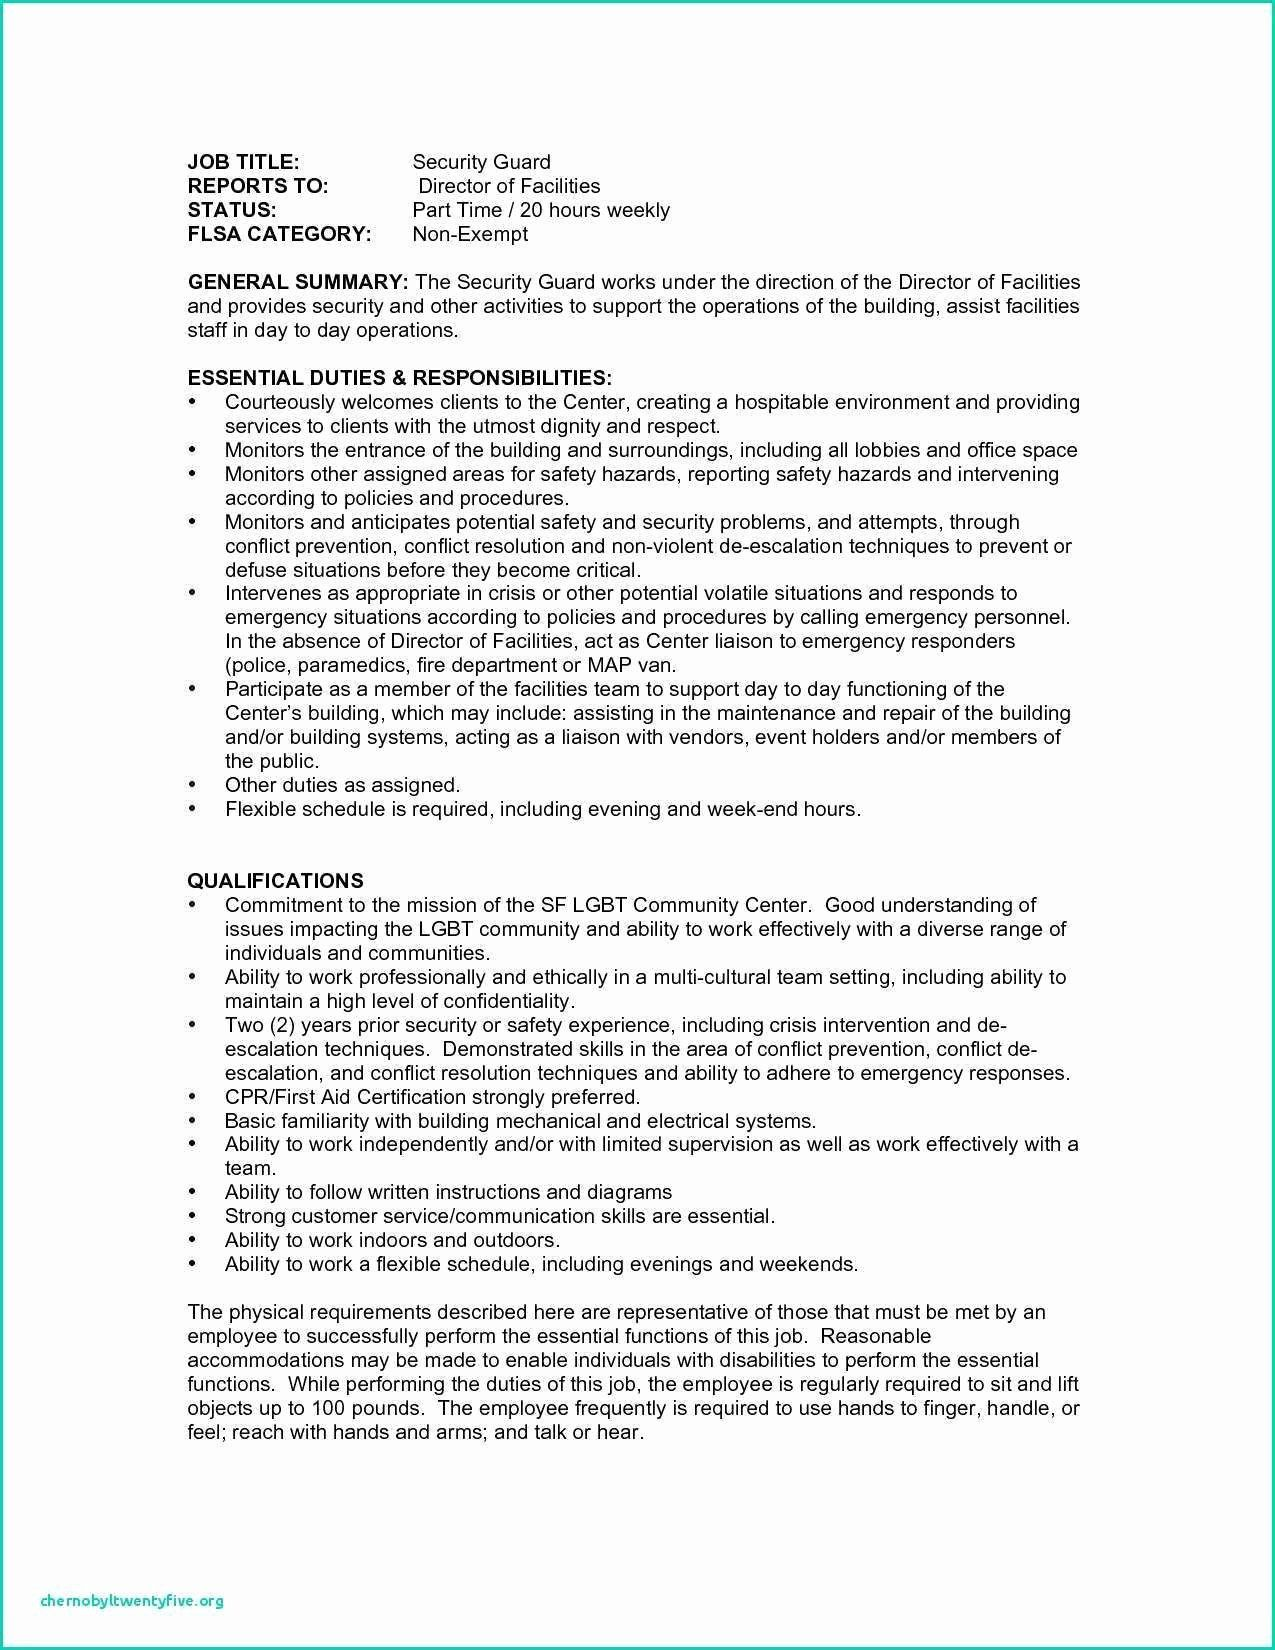 Cover Letter for Security Job Best 10 Sample Resumes Security Guard